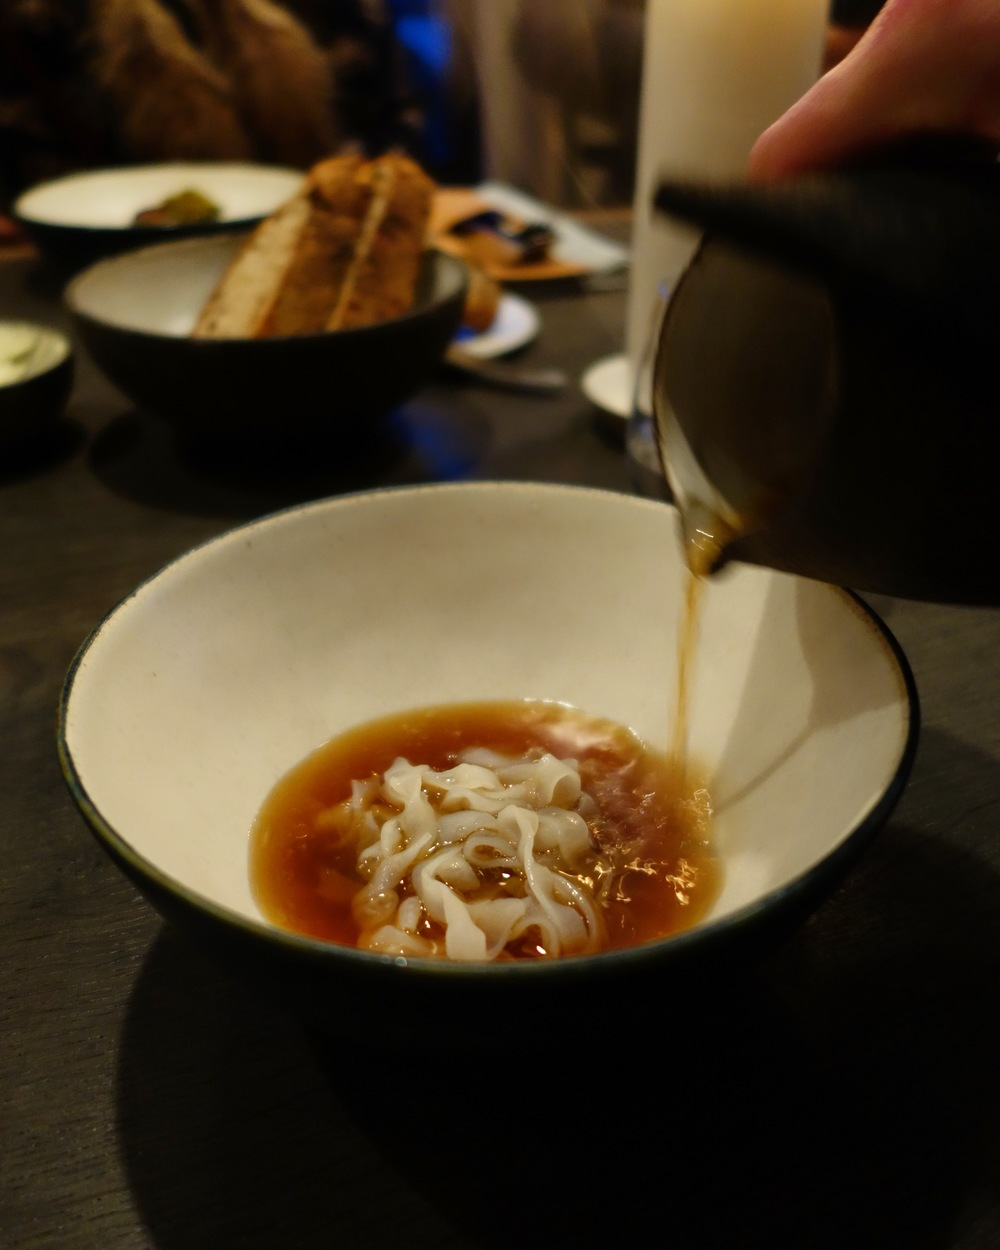 Cured squid, bacon broth and mirabelle plums. The texture of the squid was lovely, like delicate al dente noodles in a sultry rich broth.